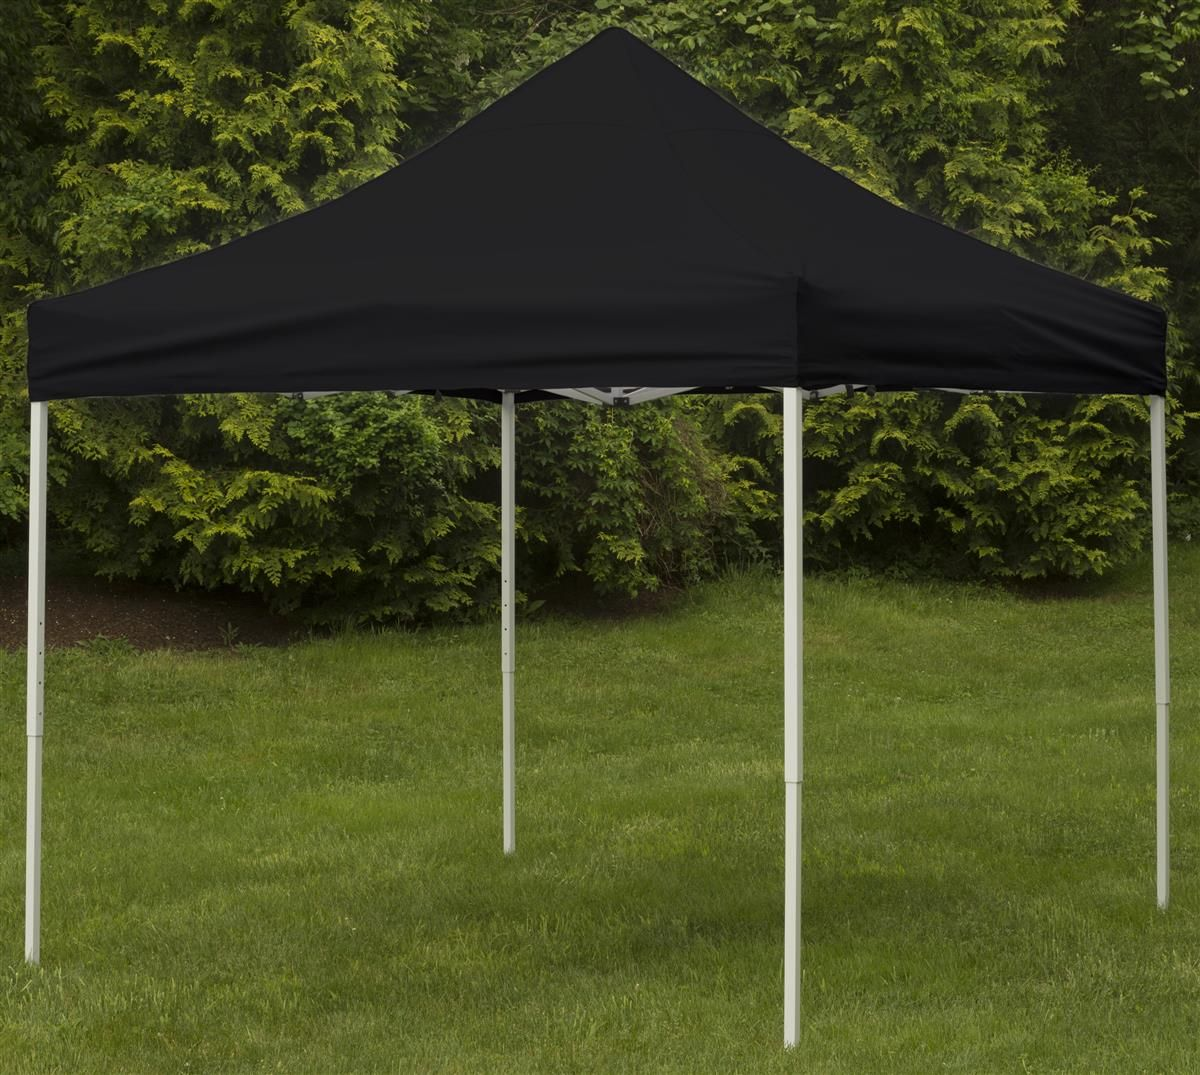 10 X 10 Outdoor Canopy Tent Pop Up Portable Square Black Canopy Tent Outdoor Canopy Outdoor Canopy Tent